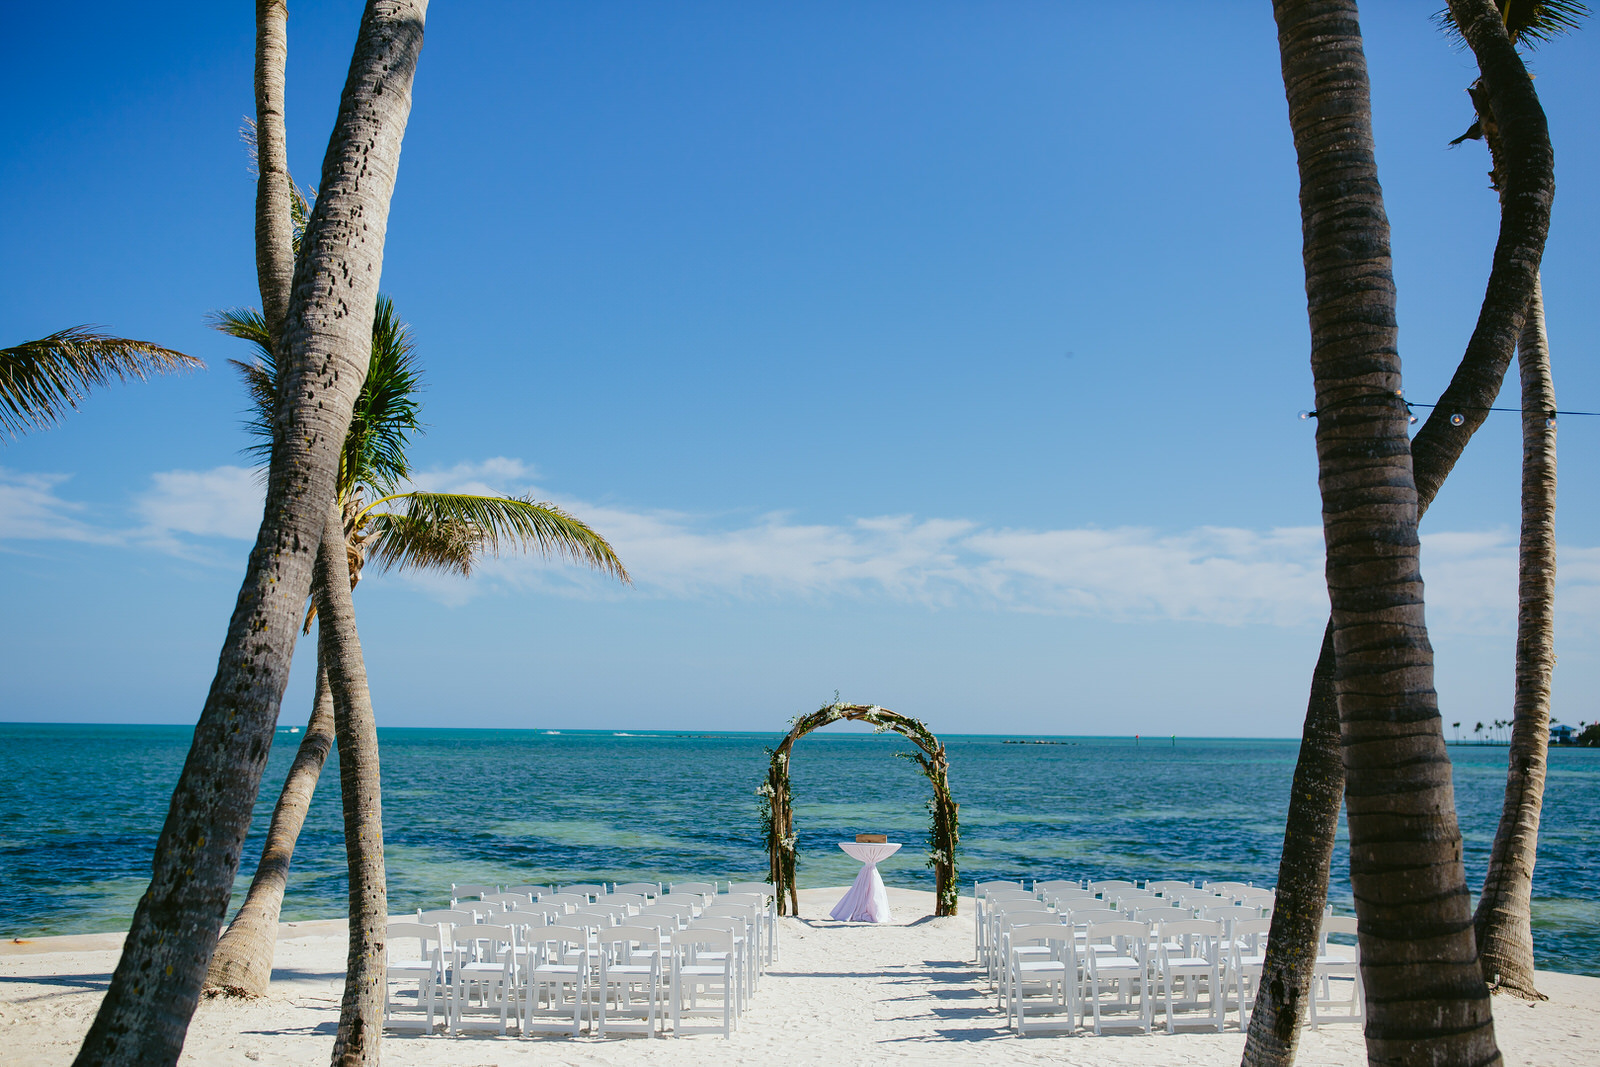 wedding_venue_destination_islamorada_amara_cay_out_of_town_tiny_house_photo.jpg